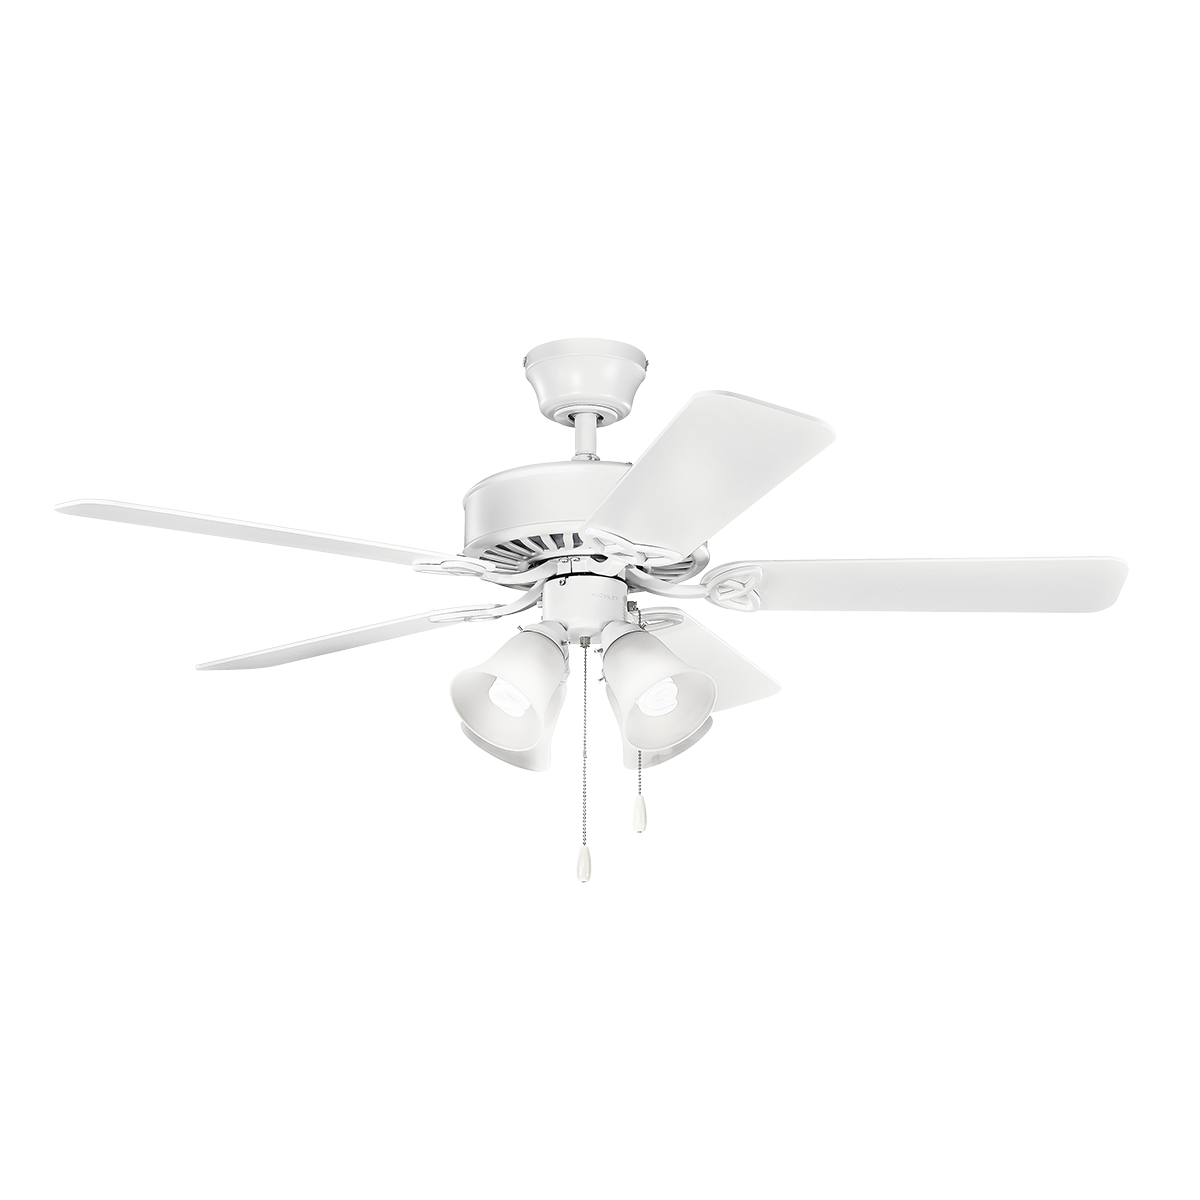 Ceiling Fan Drawing At Getdrawings Free Download